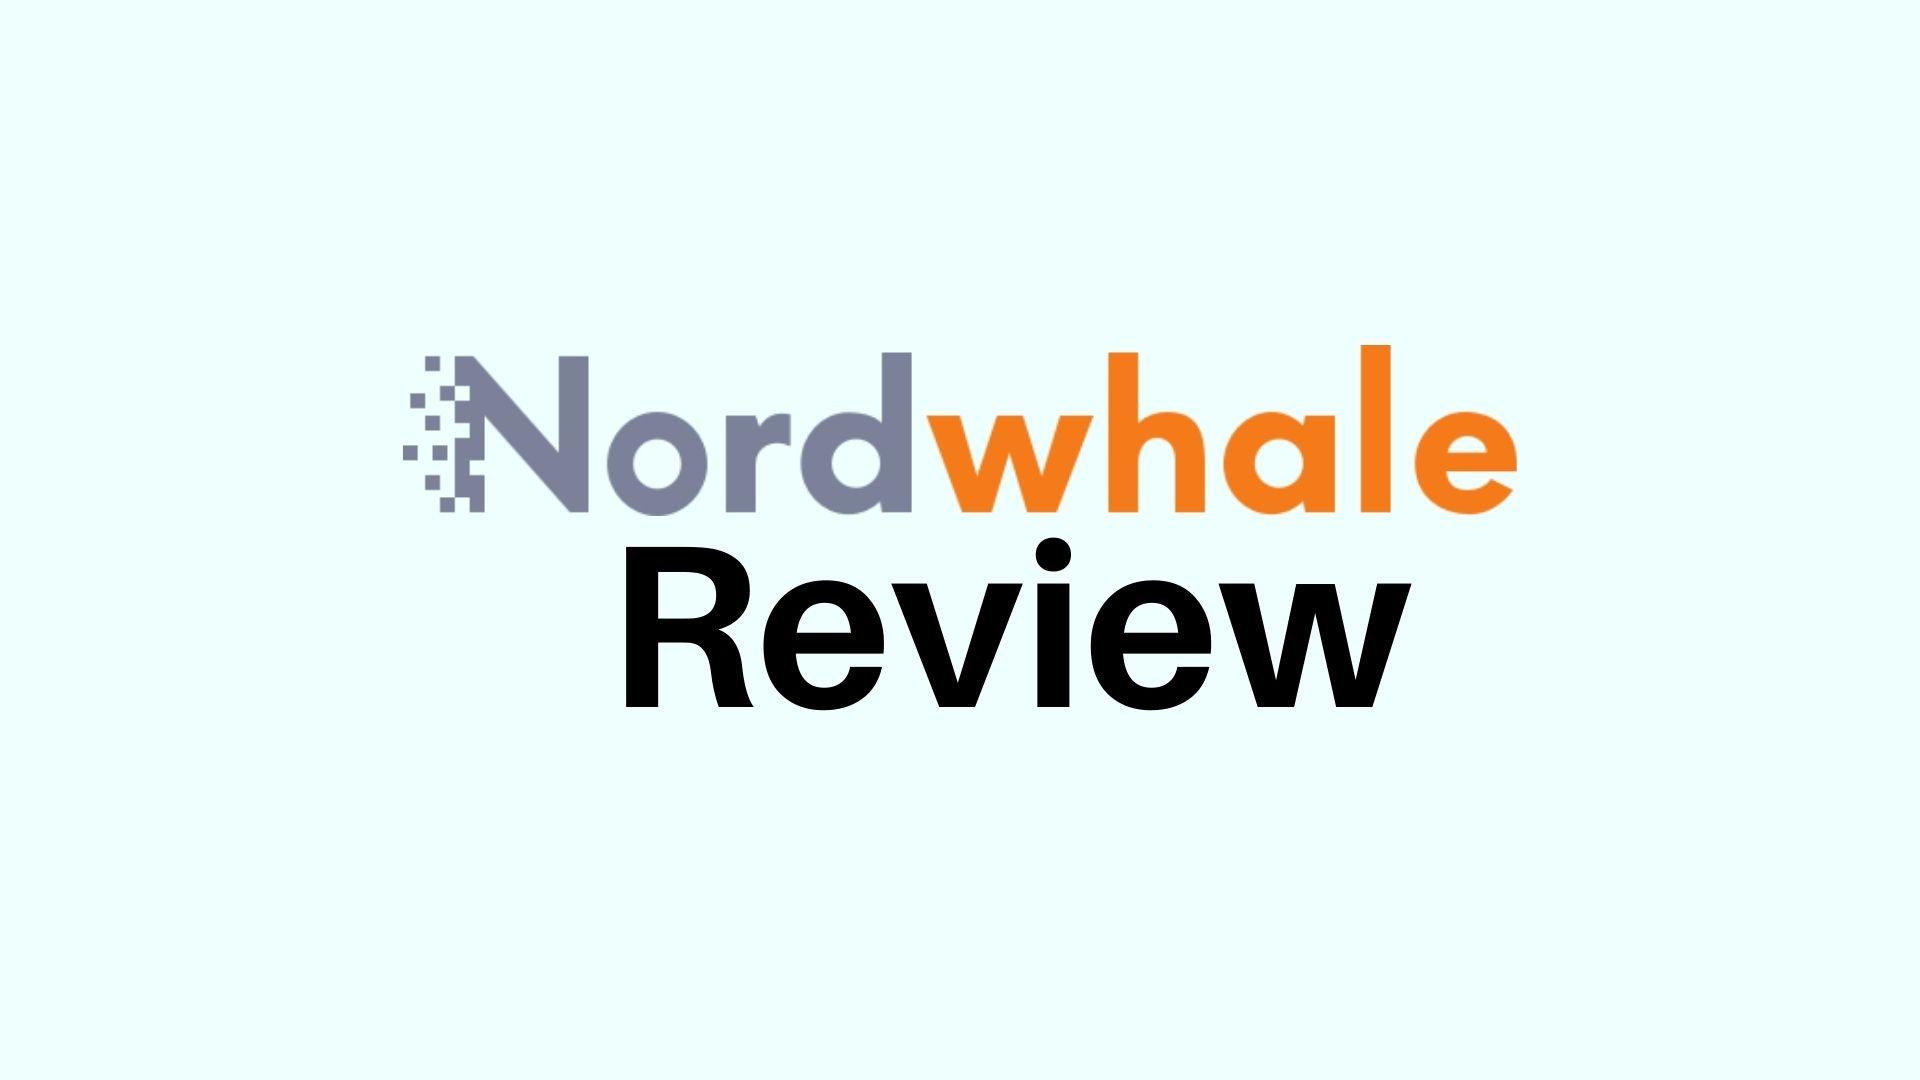 Nordwhale